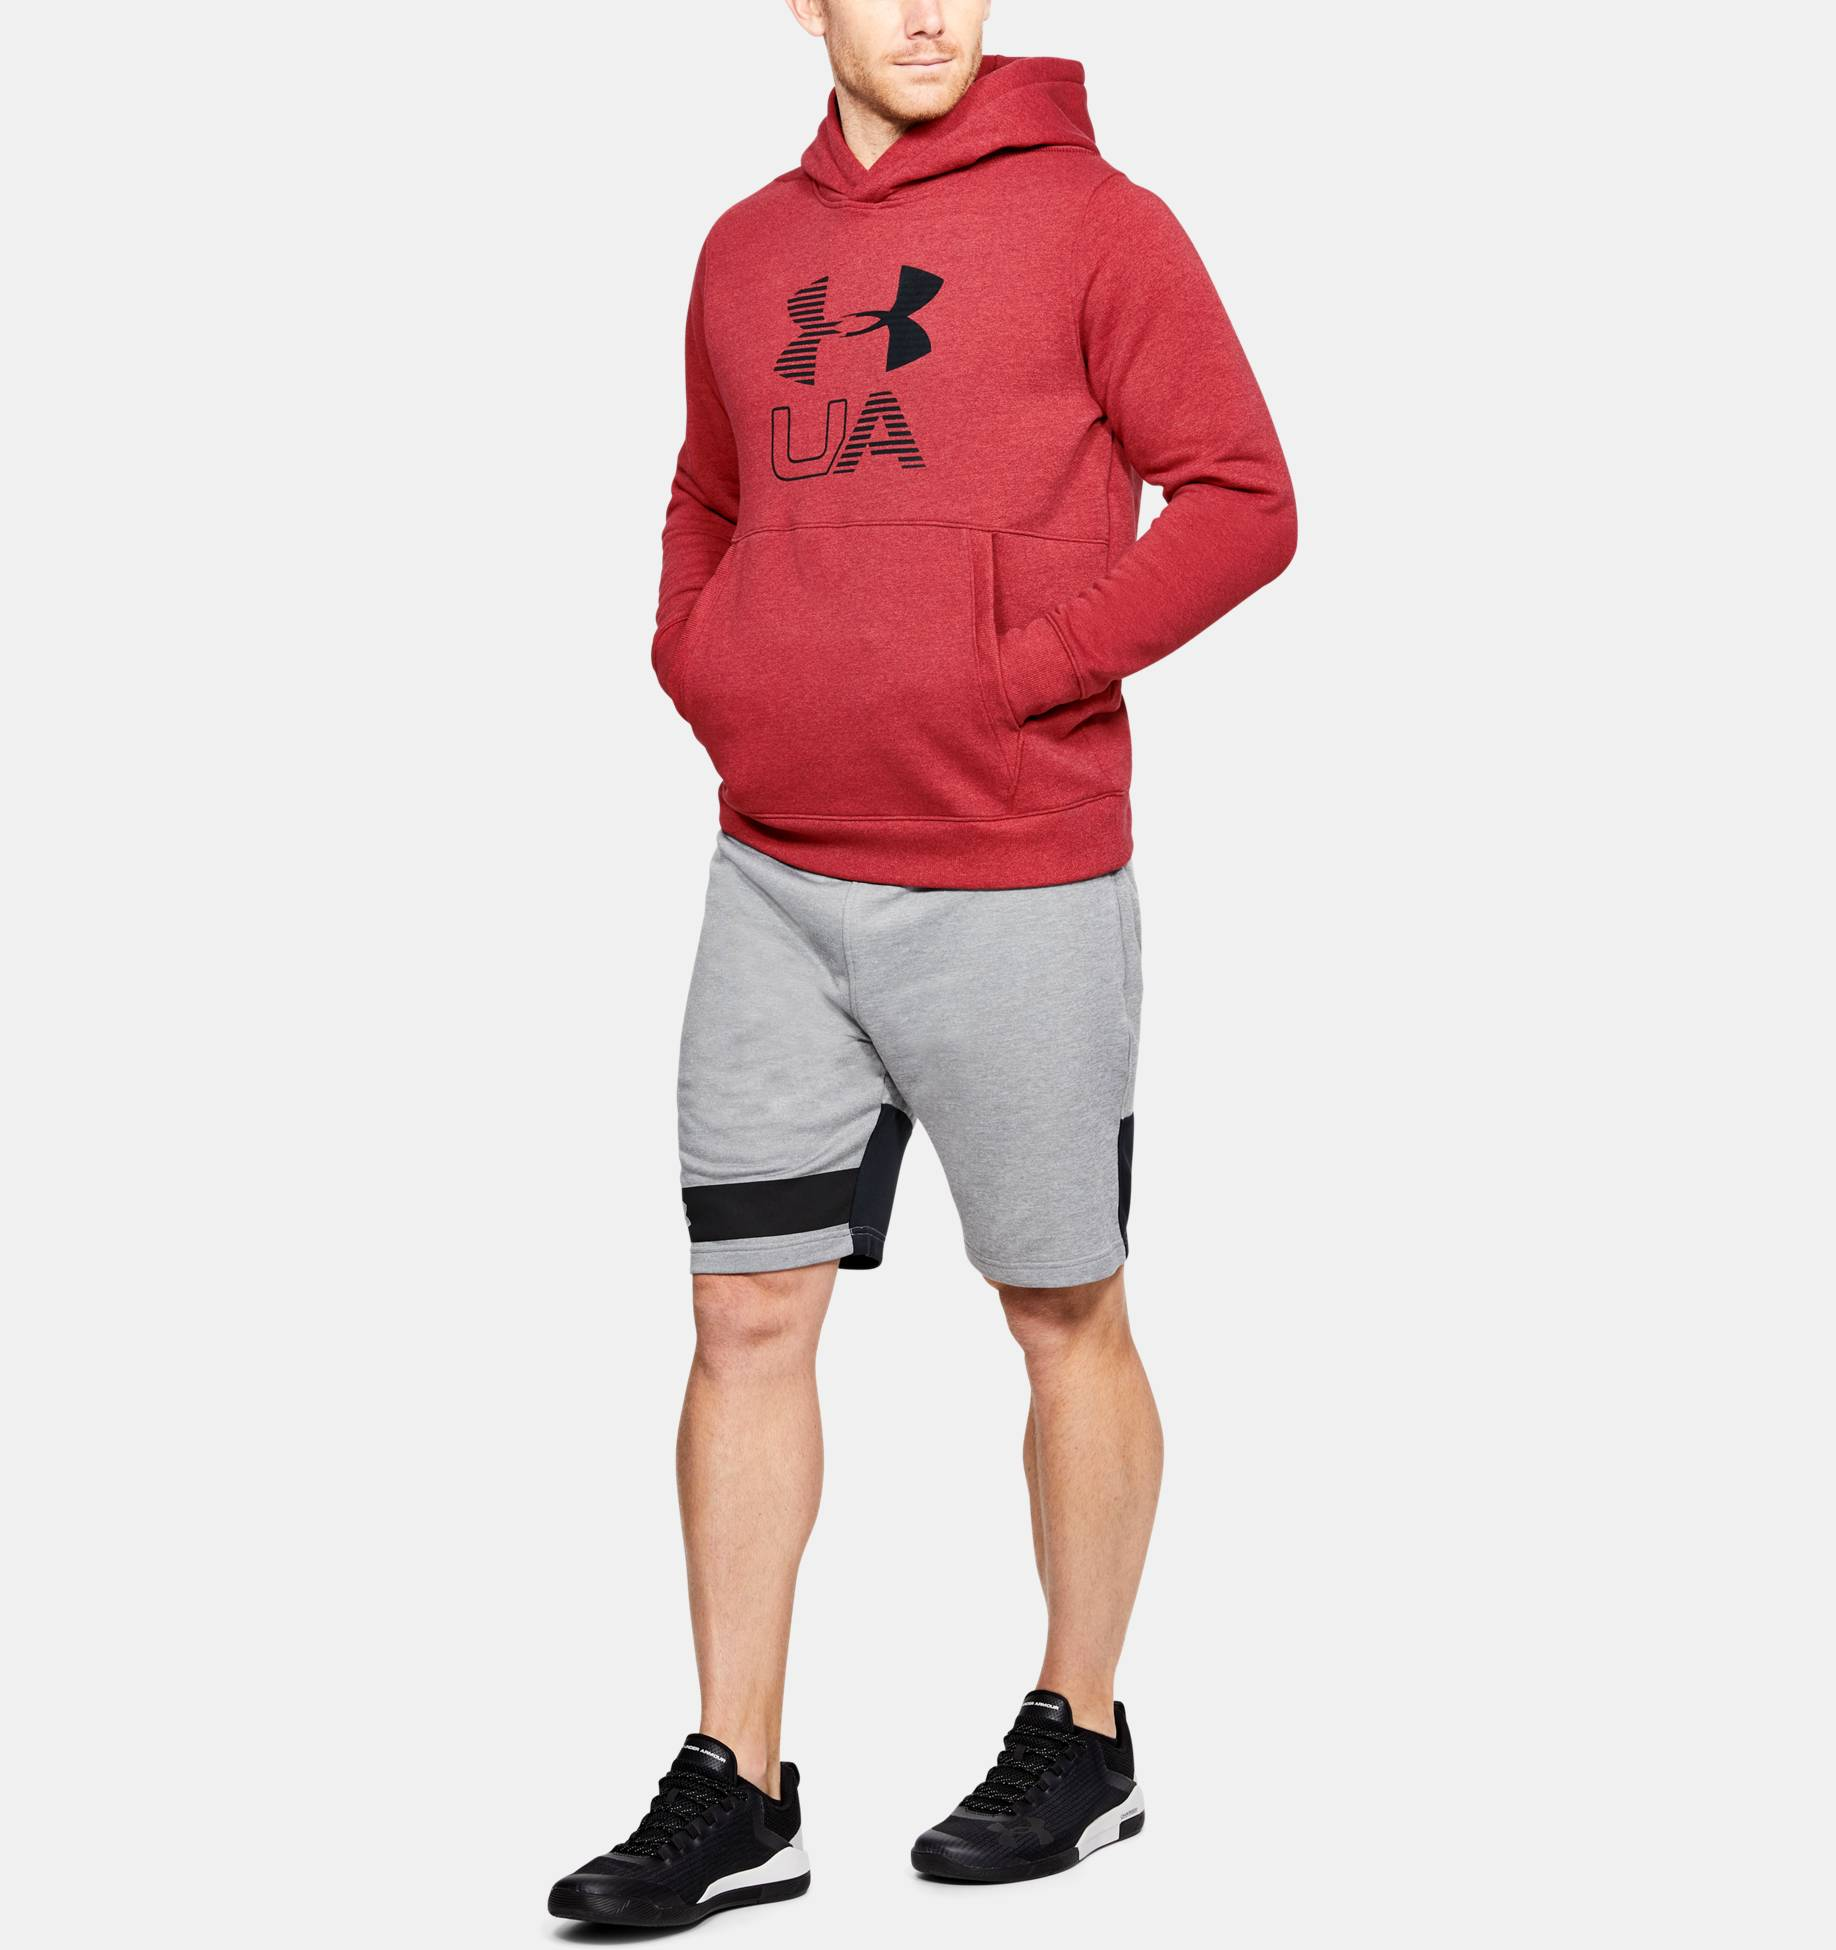 Clothing -  under armour Stretch Fleece Graphic Hoodie 9143